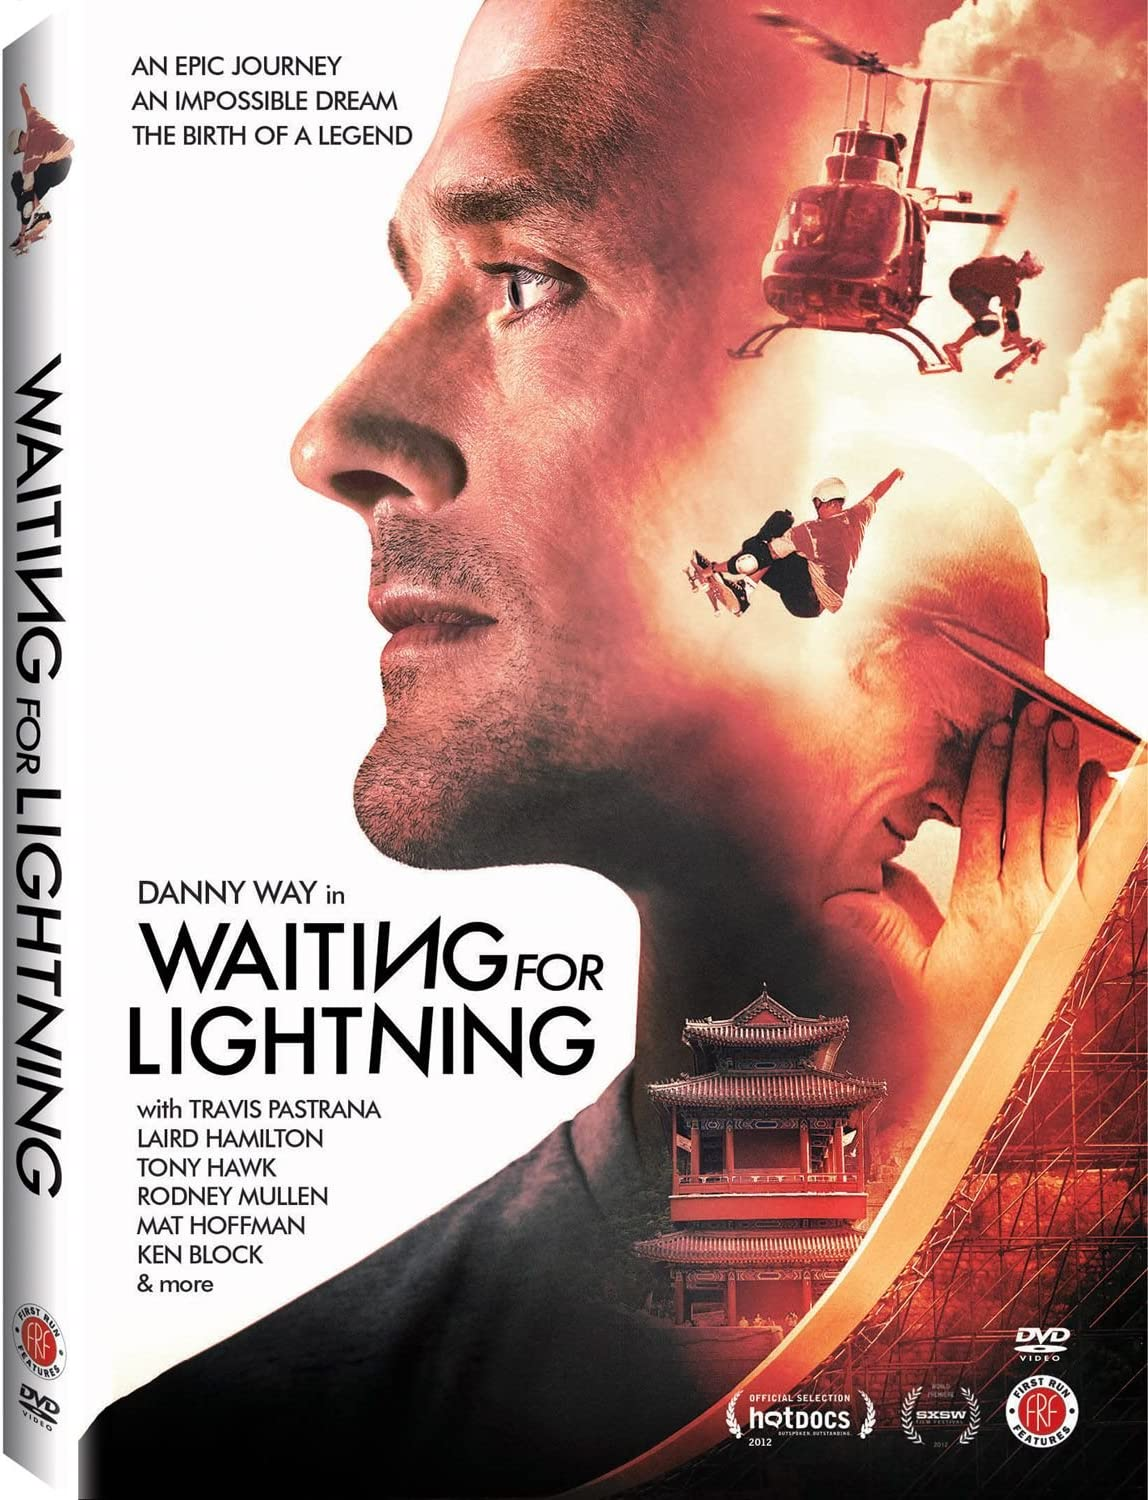 Waiting for lightning best skateboard movies